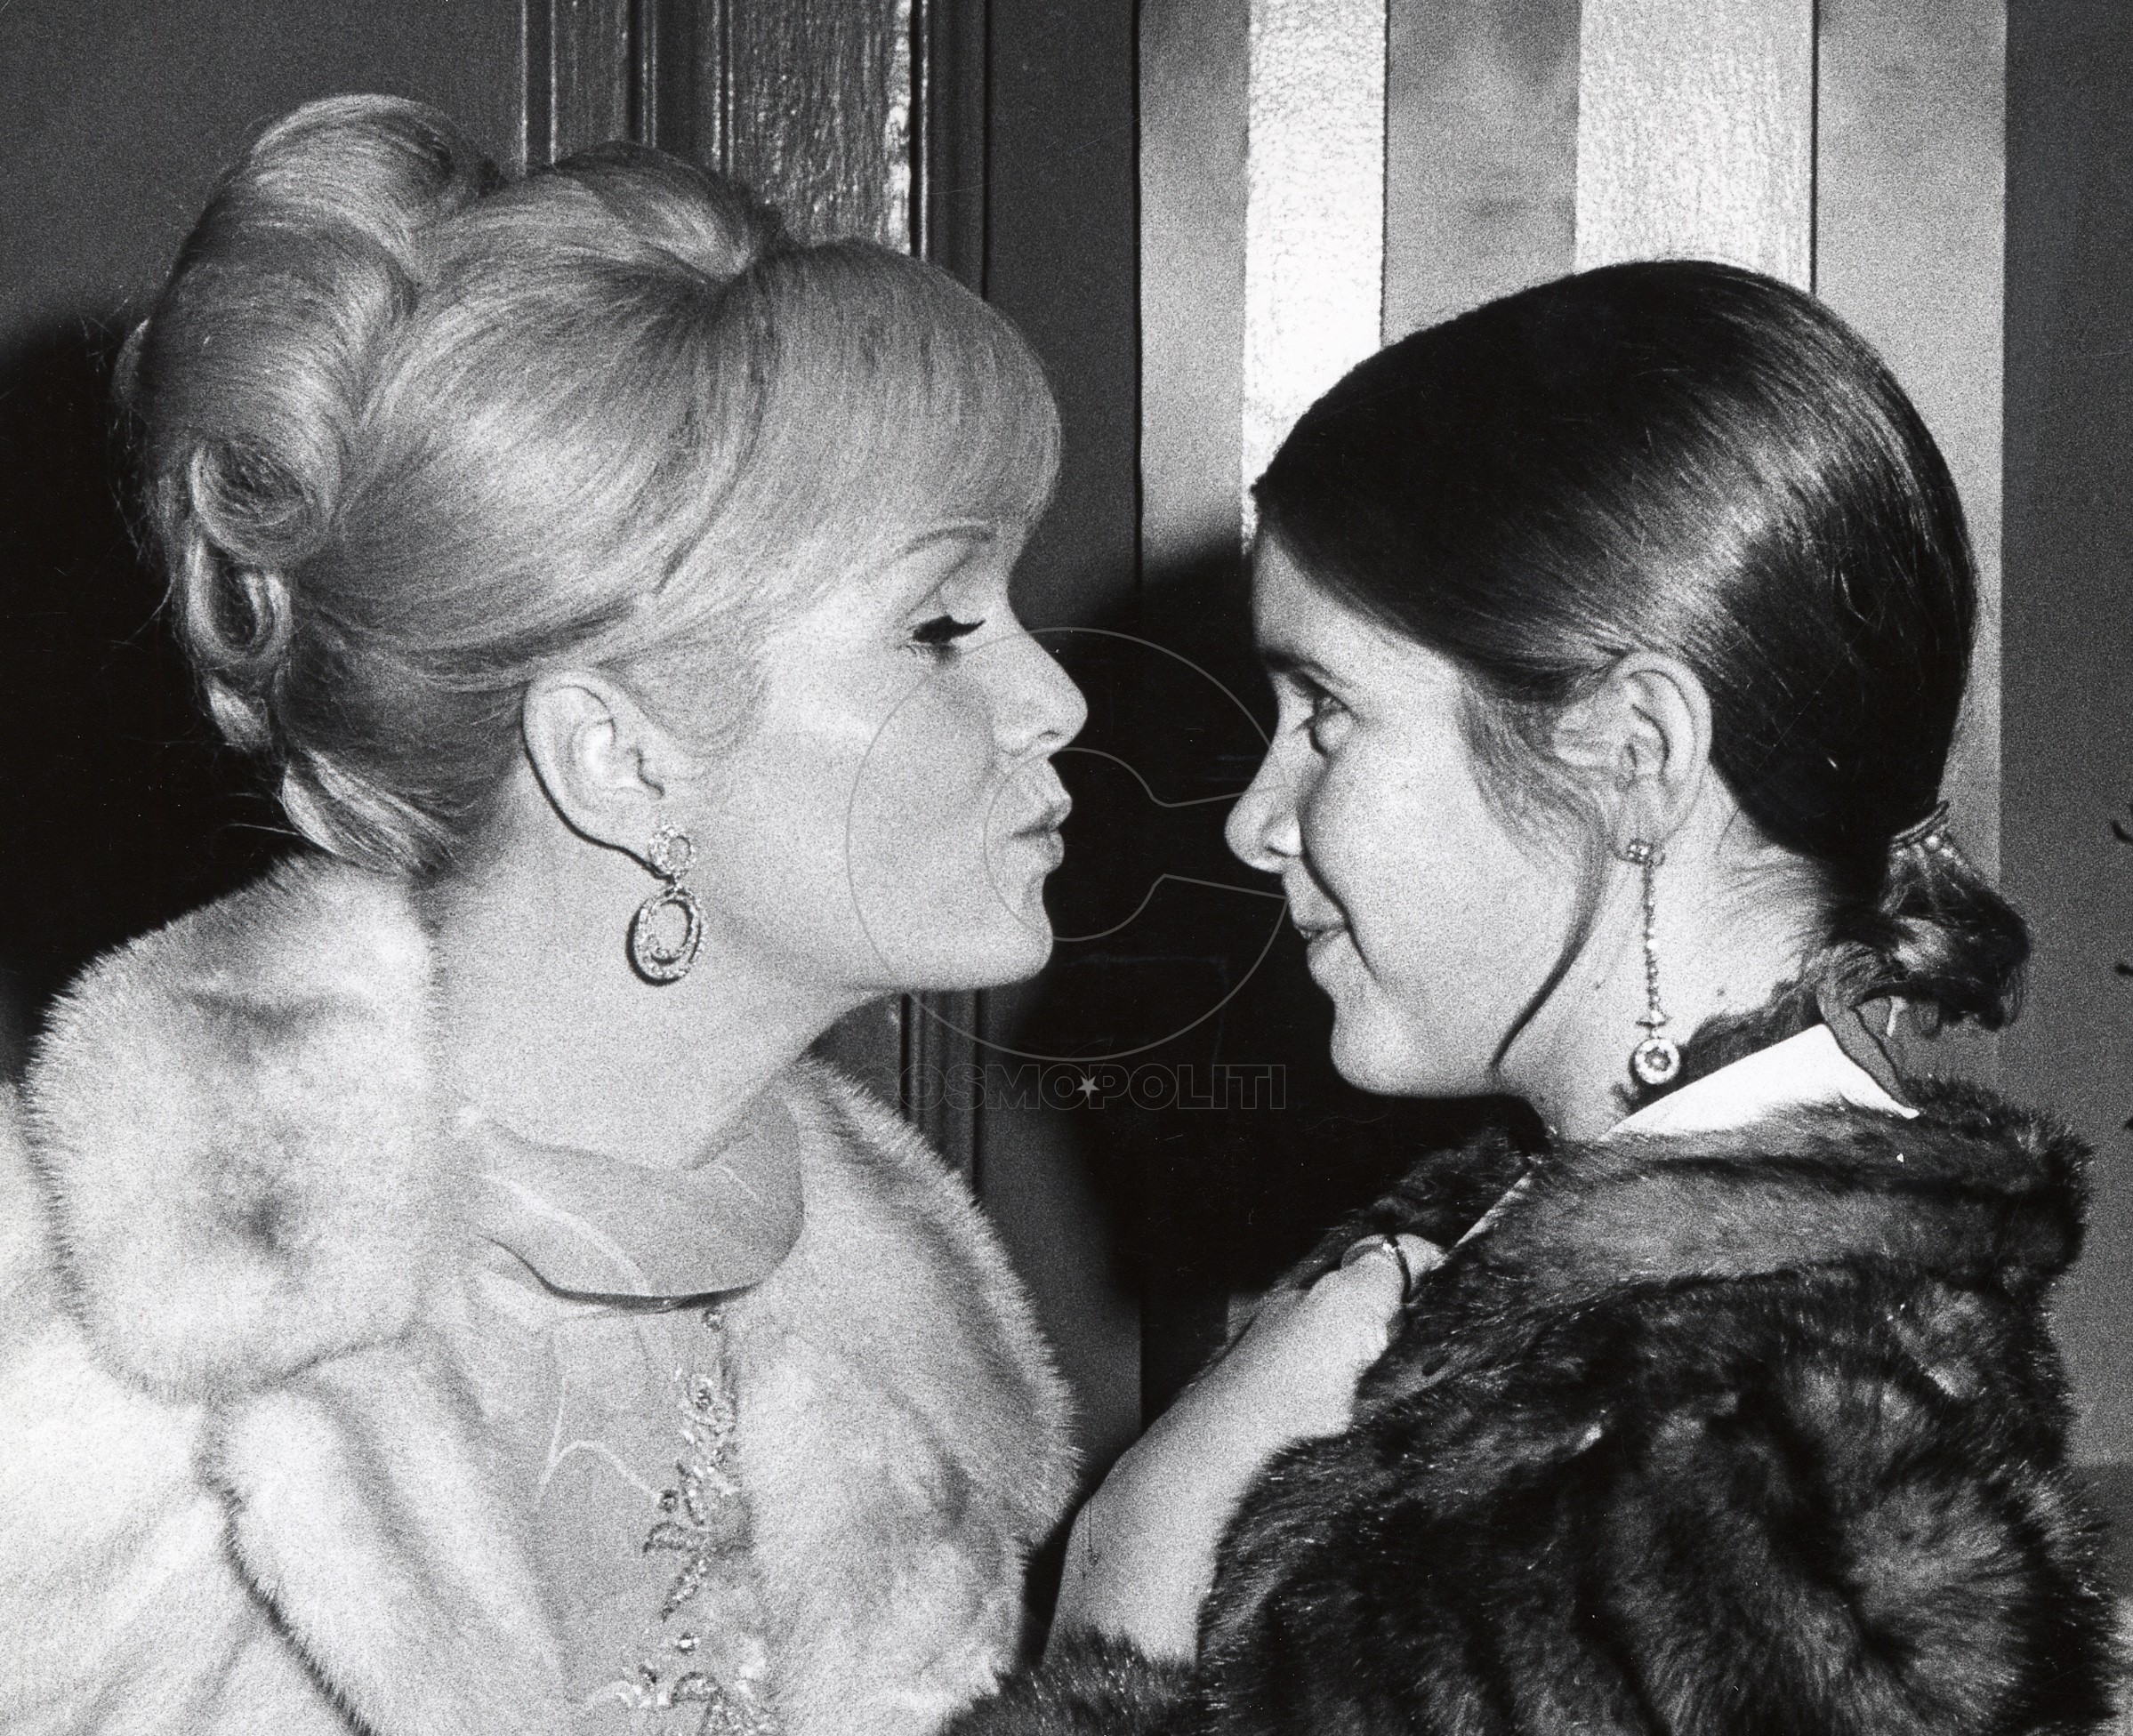 Debbie Reynolds and Carrie Fisher during Debbie Reynolds sighting at the Town Hall, New York City for the School Benefit at Town Hall - November 6, 1972 at Town Hall, New York City in New York City, New York, United States. (Photo by Ron Galella/WireImage)